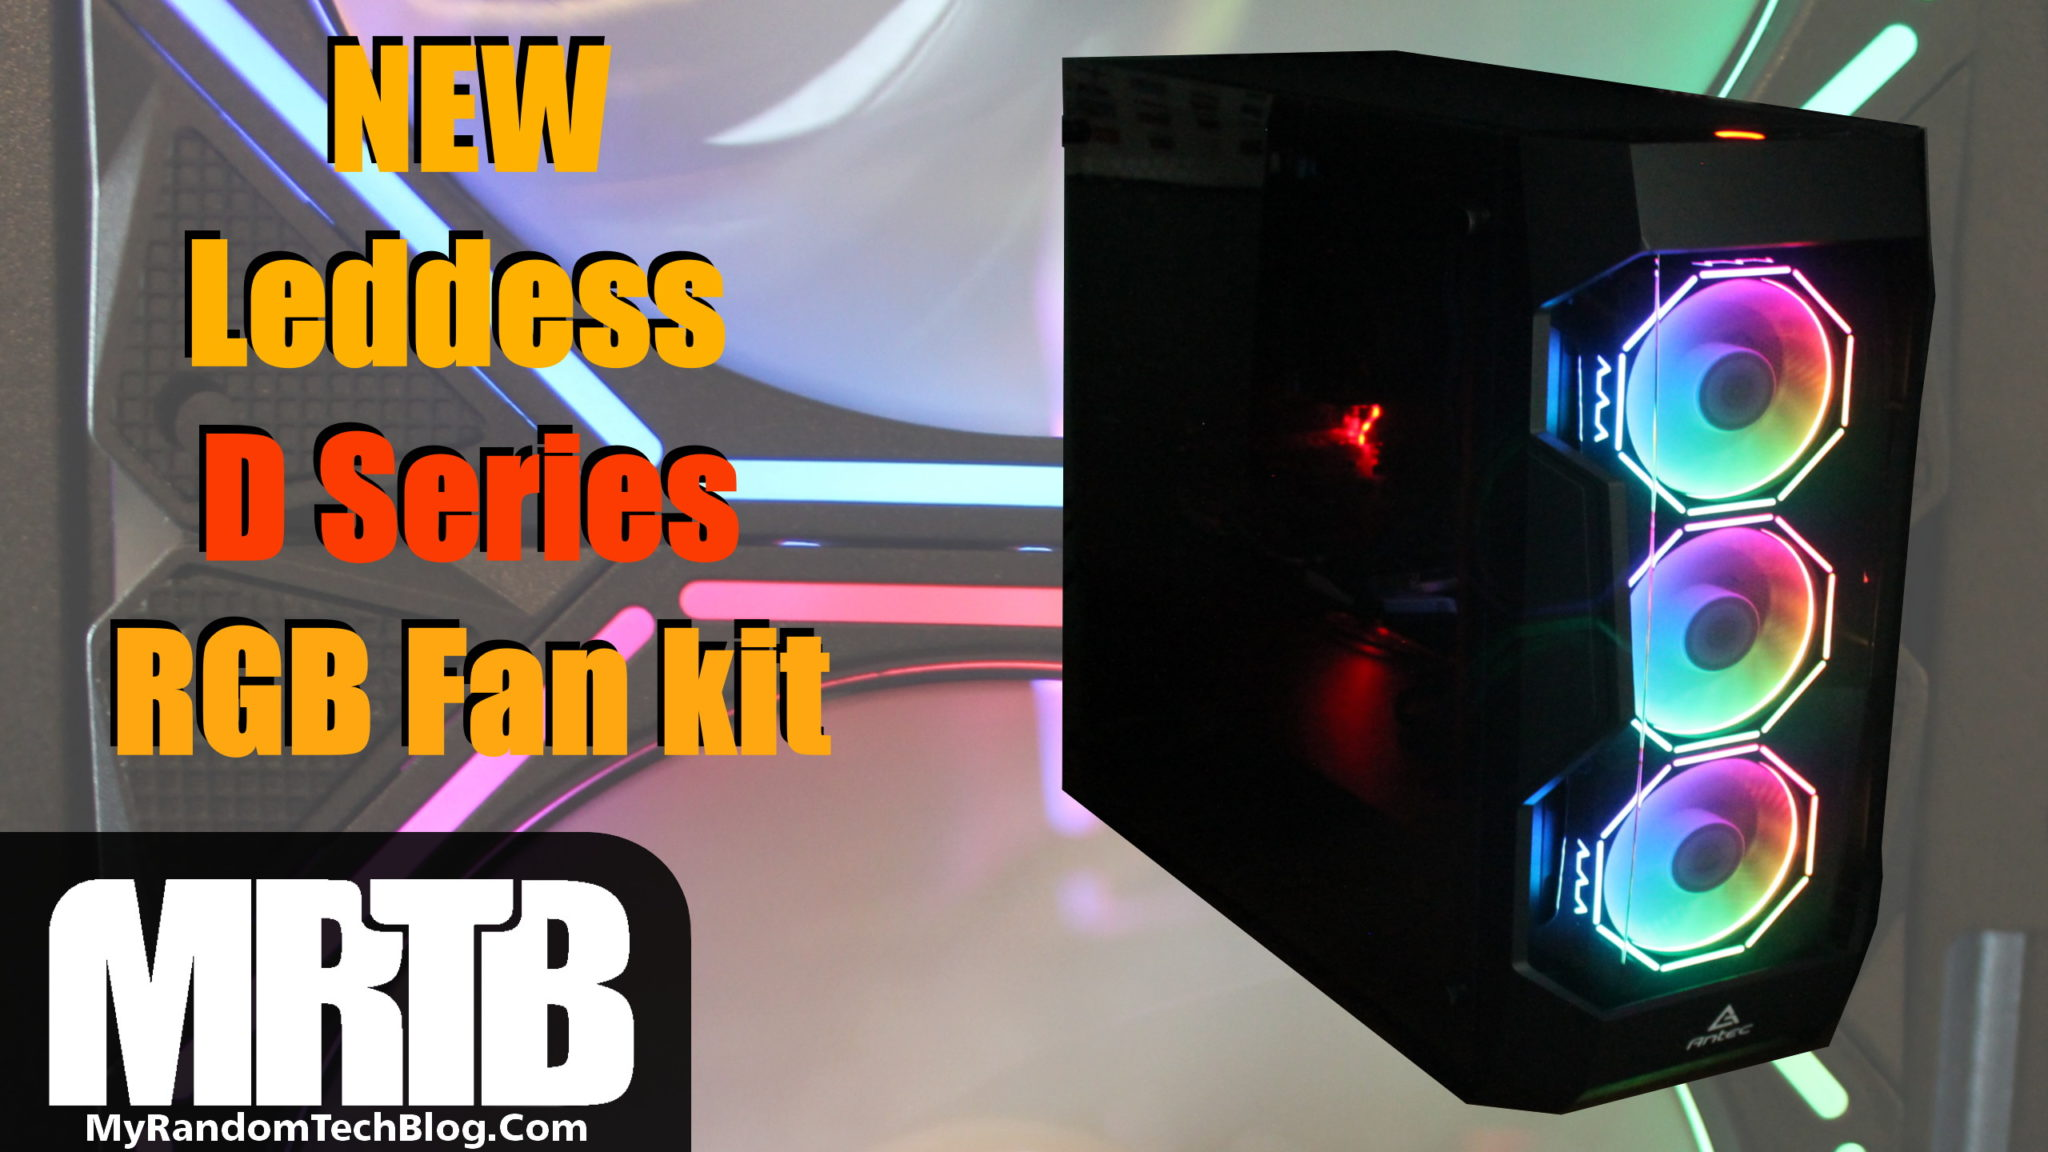 LEDdess D series RGB fan review.